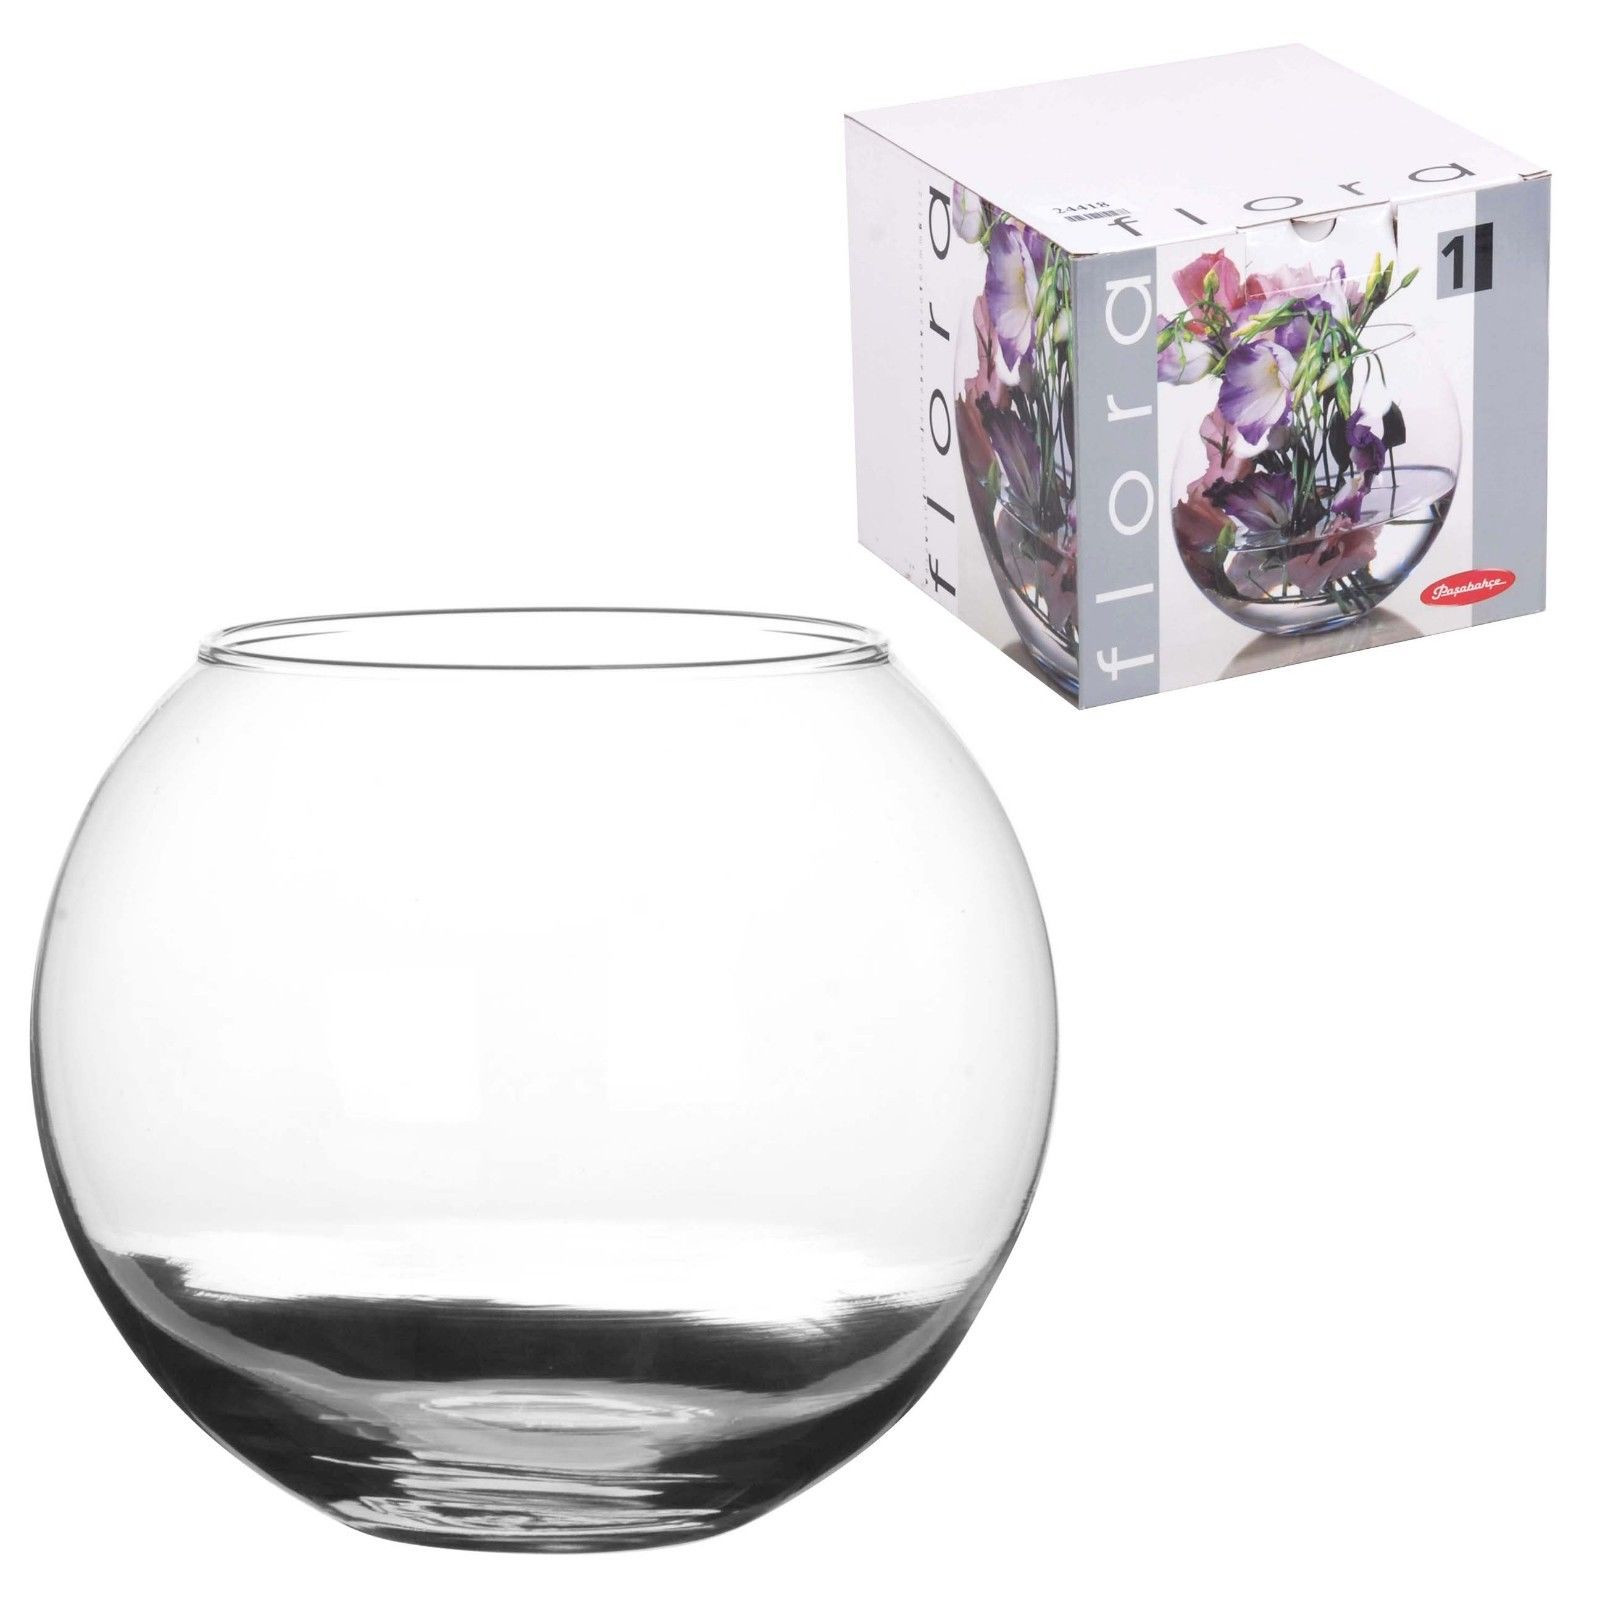 Decorative Fish Bowl Vases Of Pasabahce Glass 16cm Round Botanica Flower Vase Display Fish Bowl Inside 16 Cm Fishbowl Bubble Ball Bowl